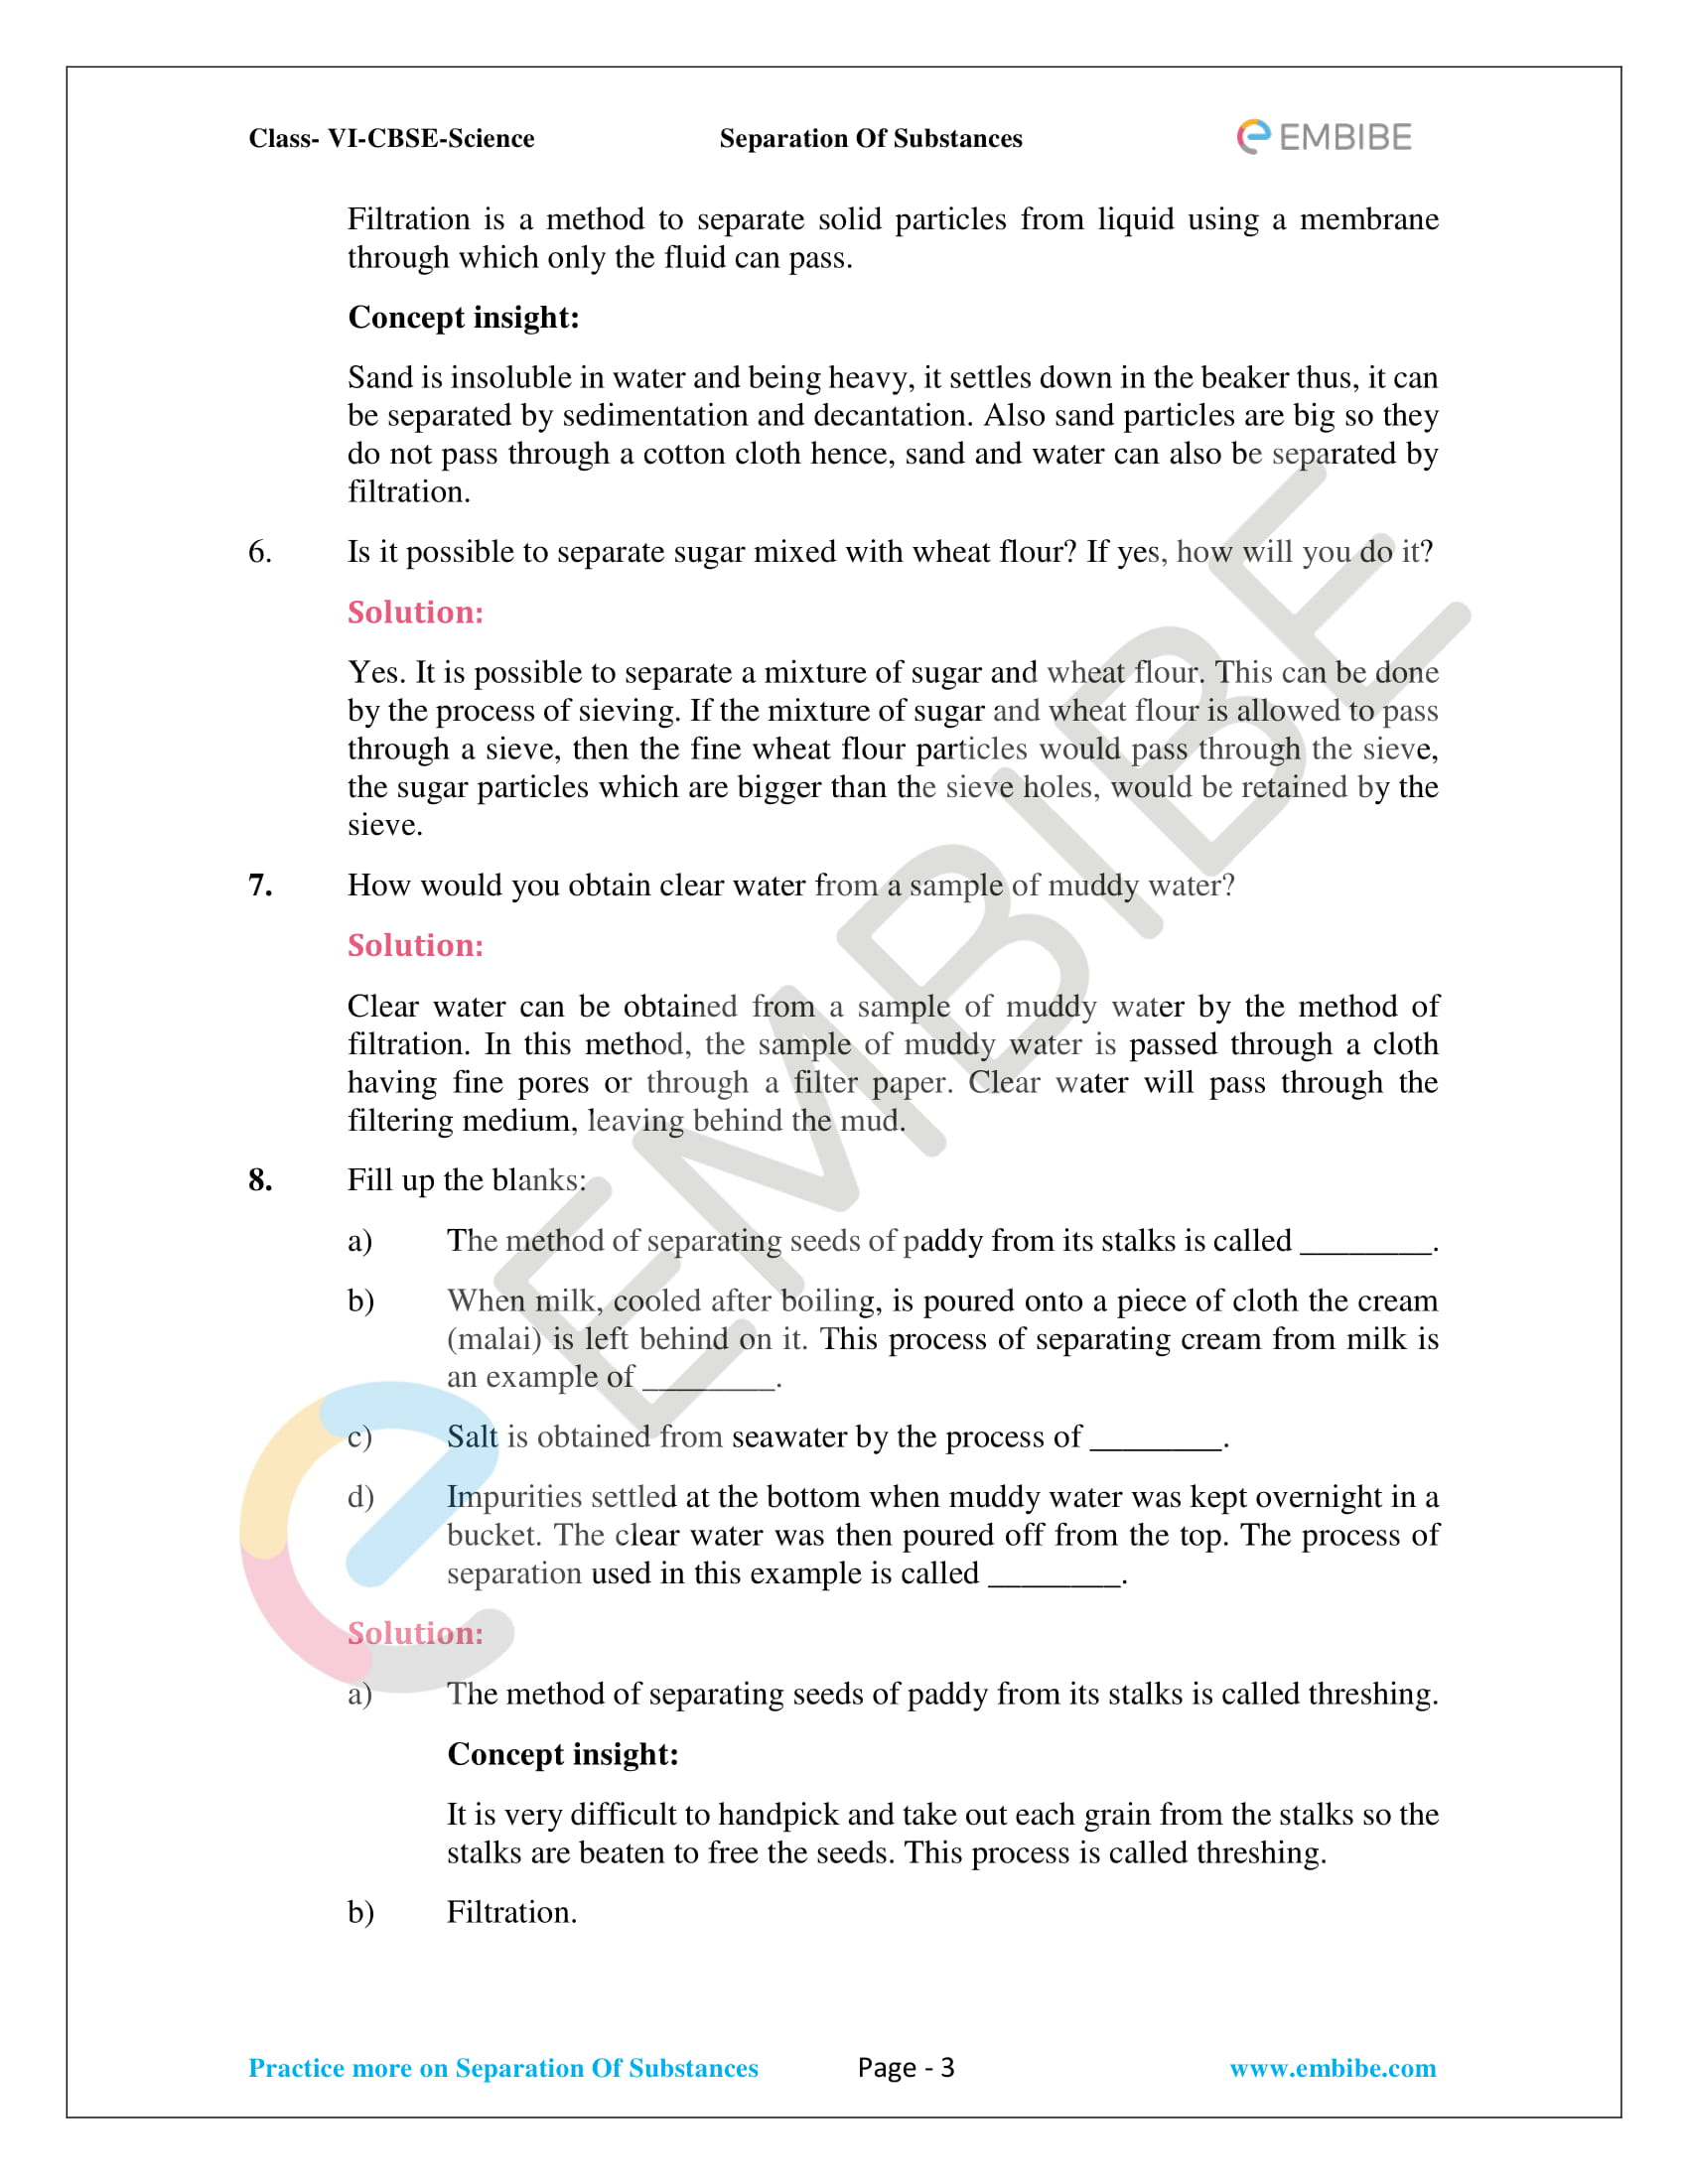 CBSE Class 6 NCERT Science Solutions Chapter 5 - Separation Of Substances - 3